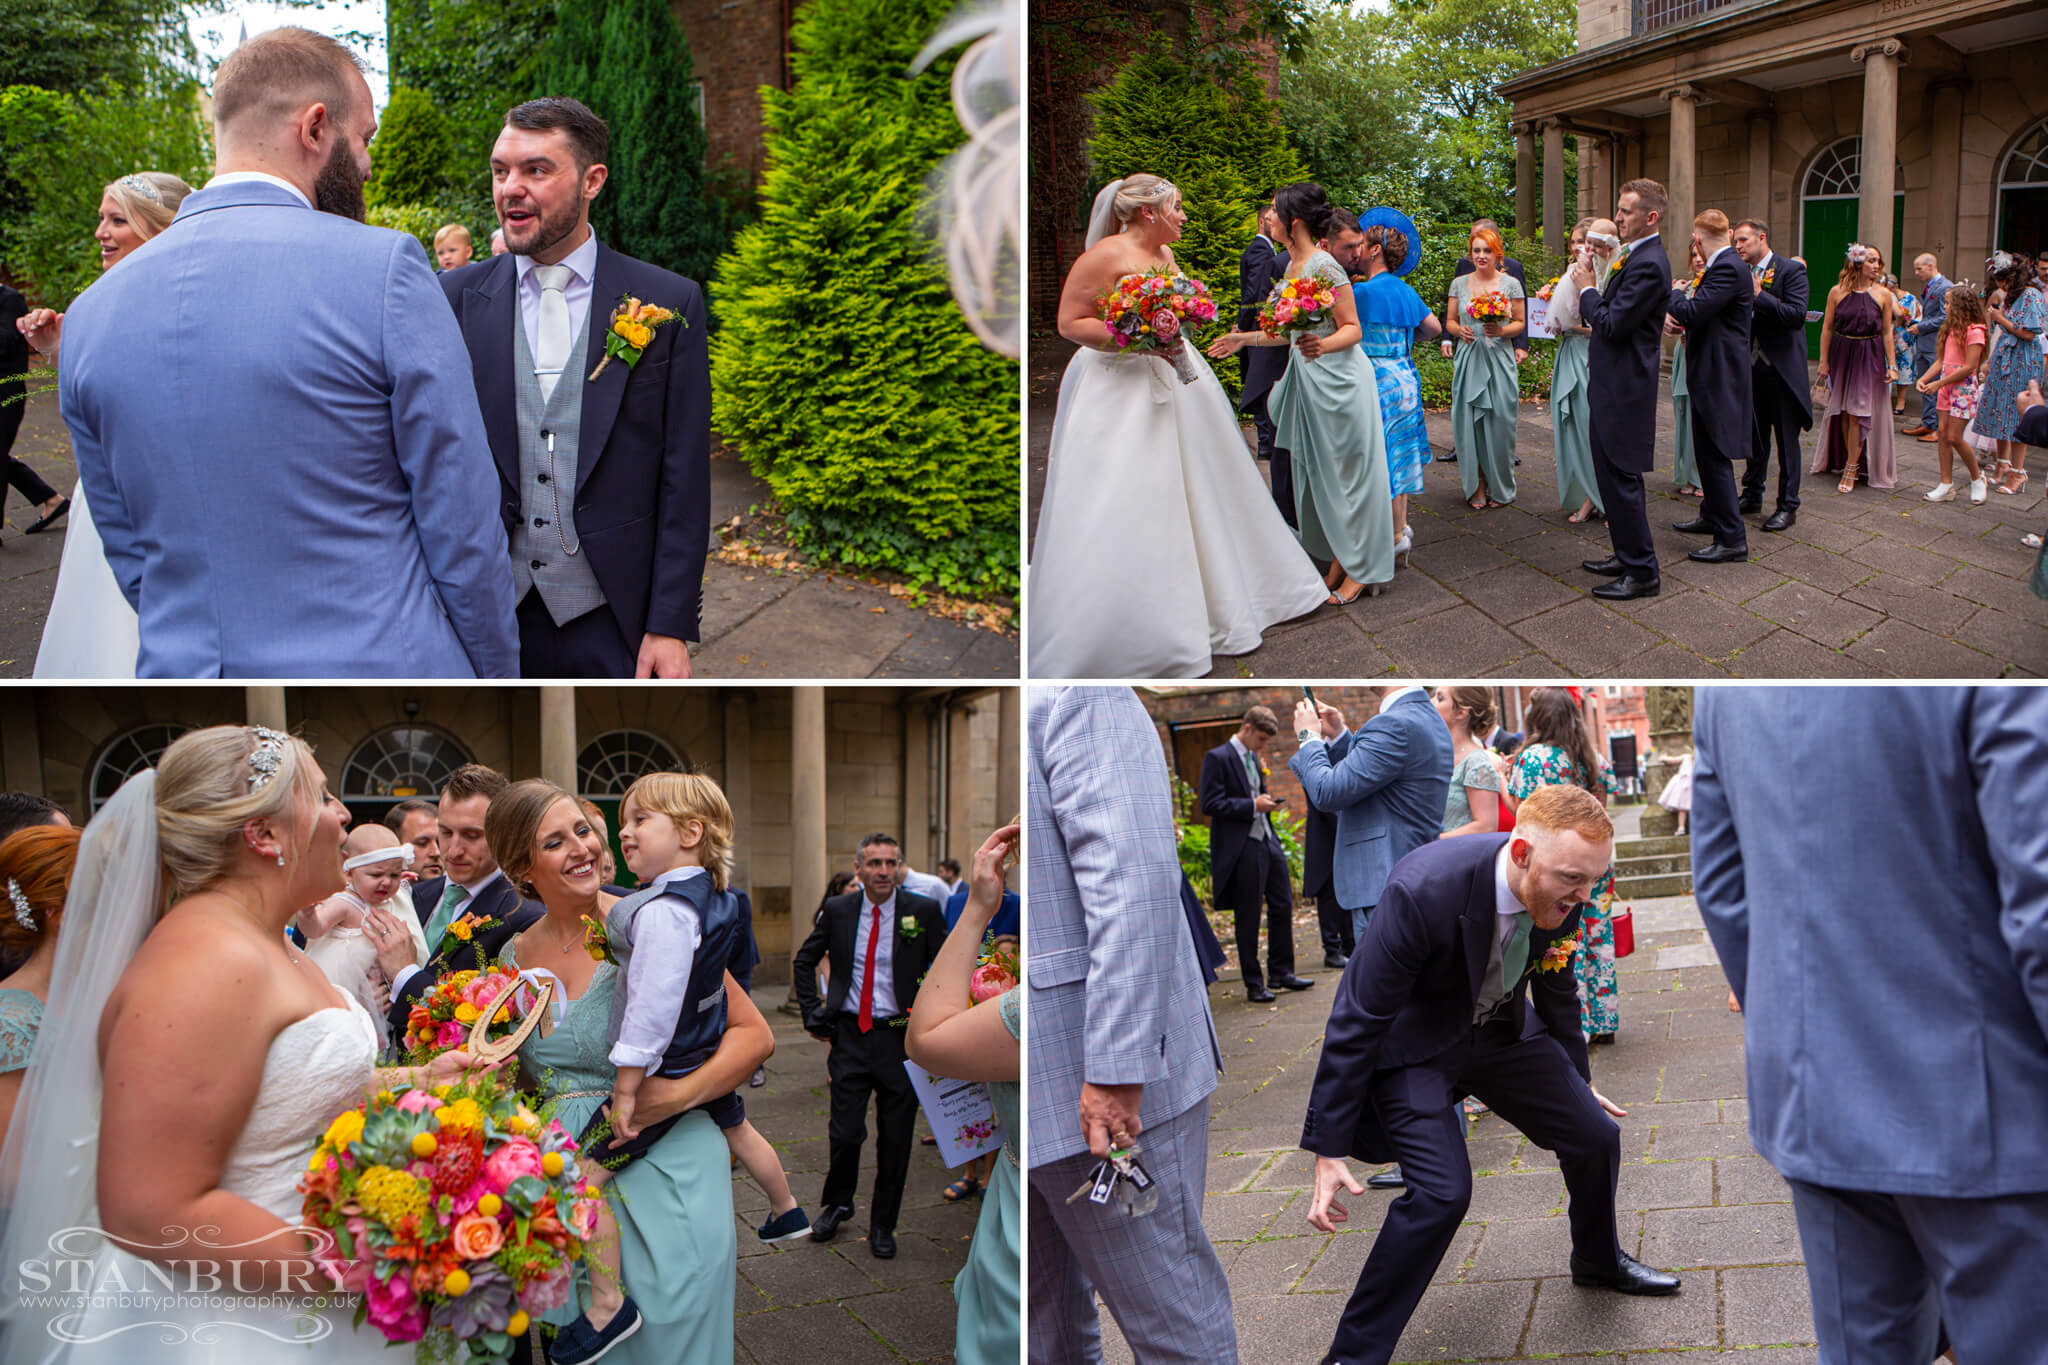 best-lancashire-wedding-photographers-stanbury-photography-018